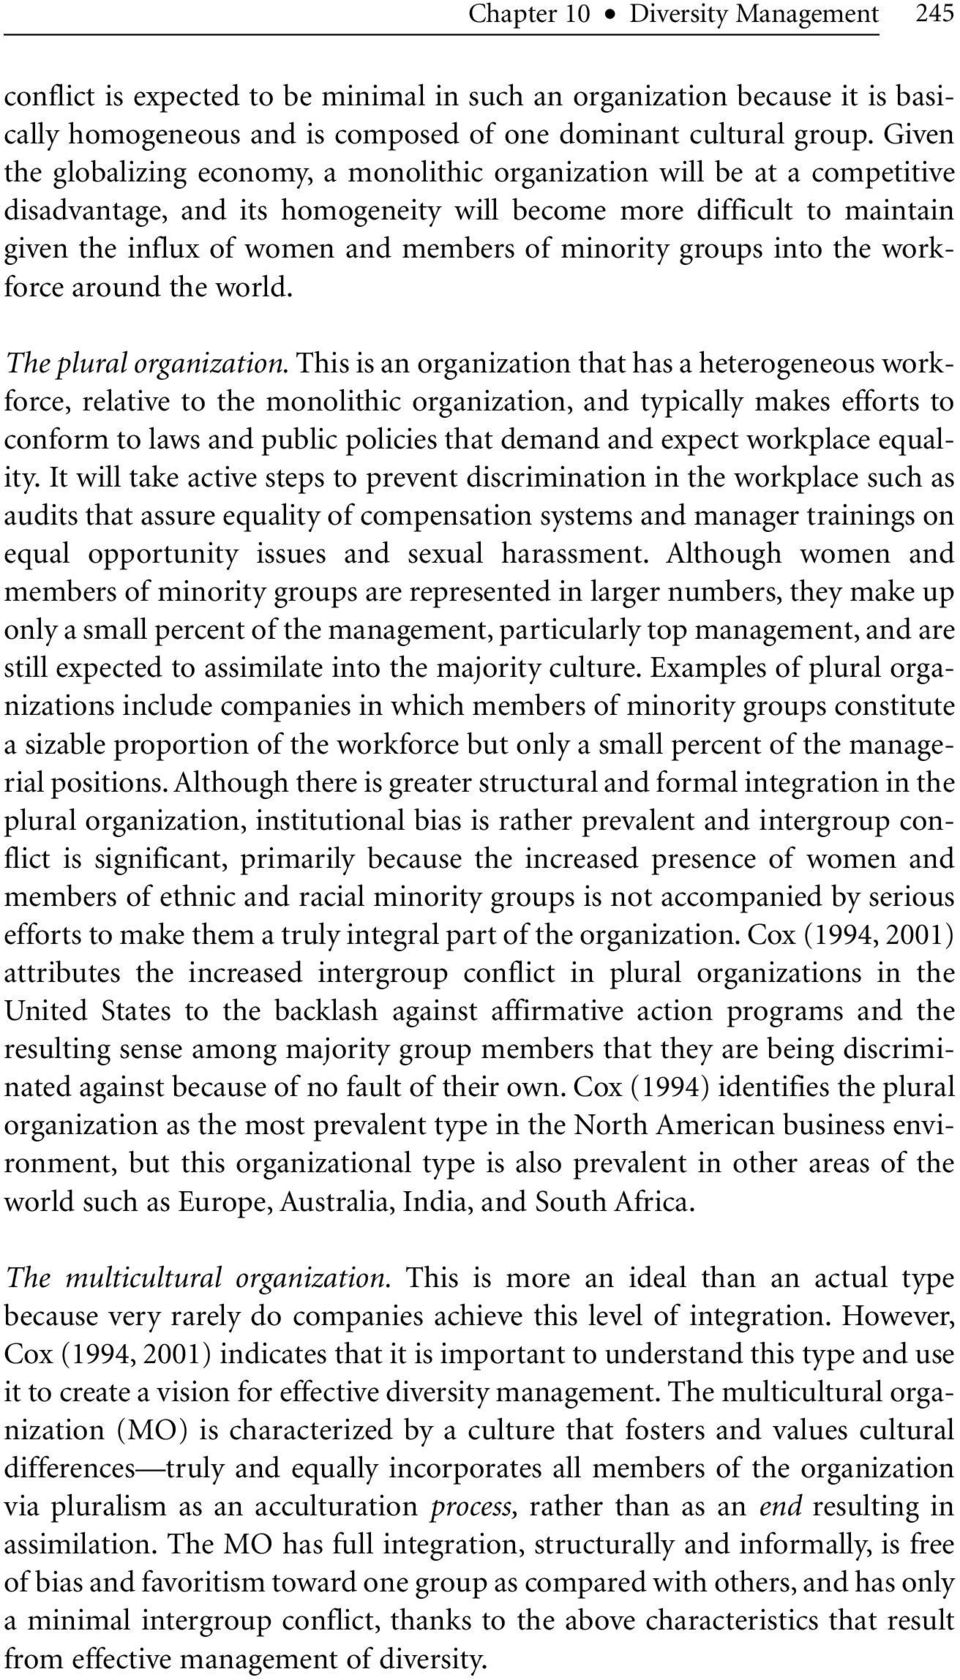 minority groups into the workforce around the world. The plural organization.